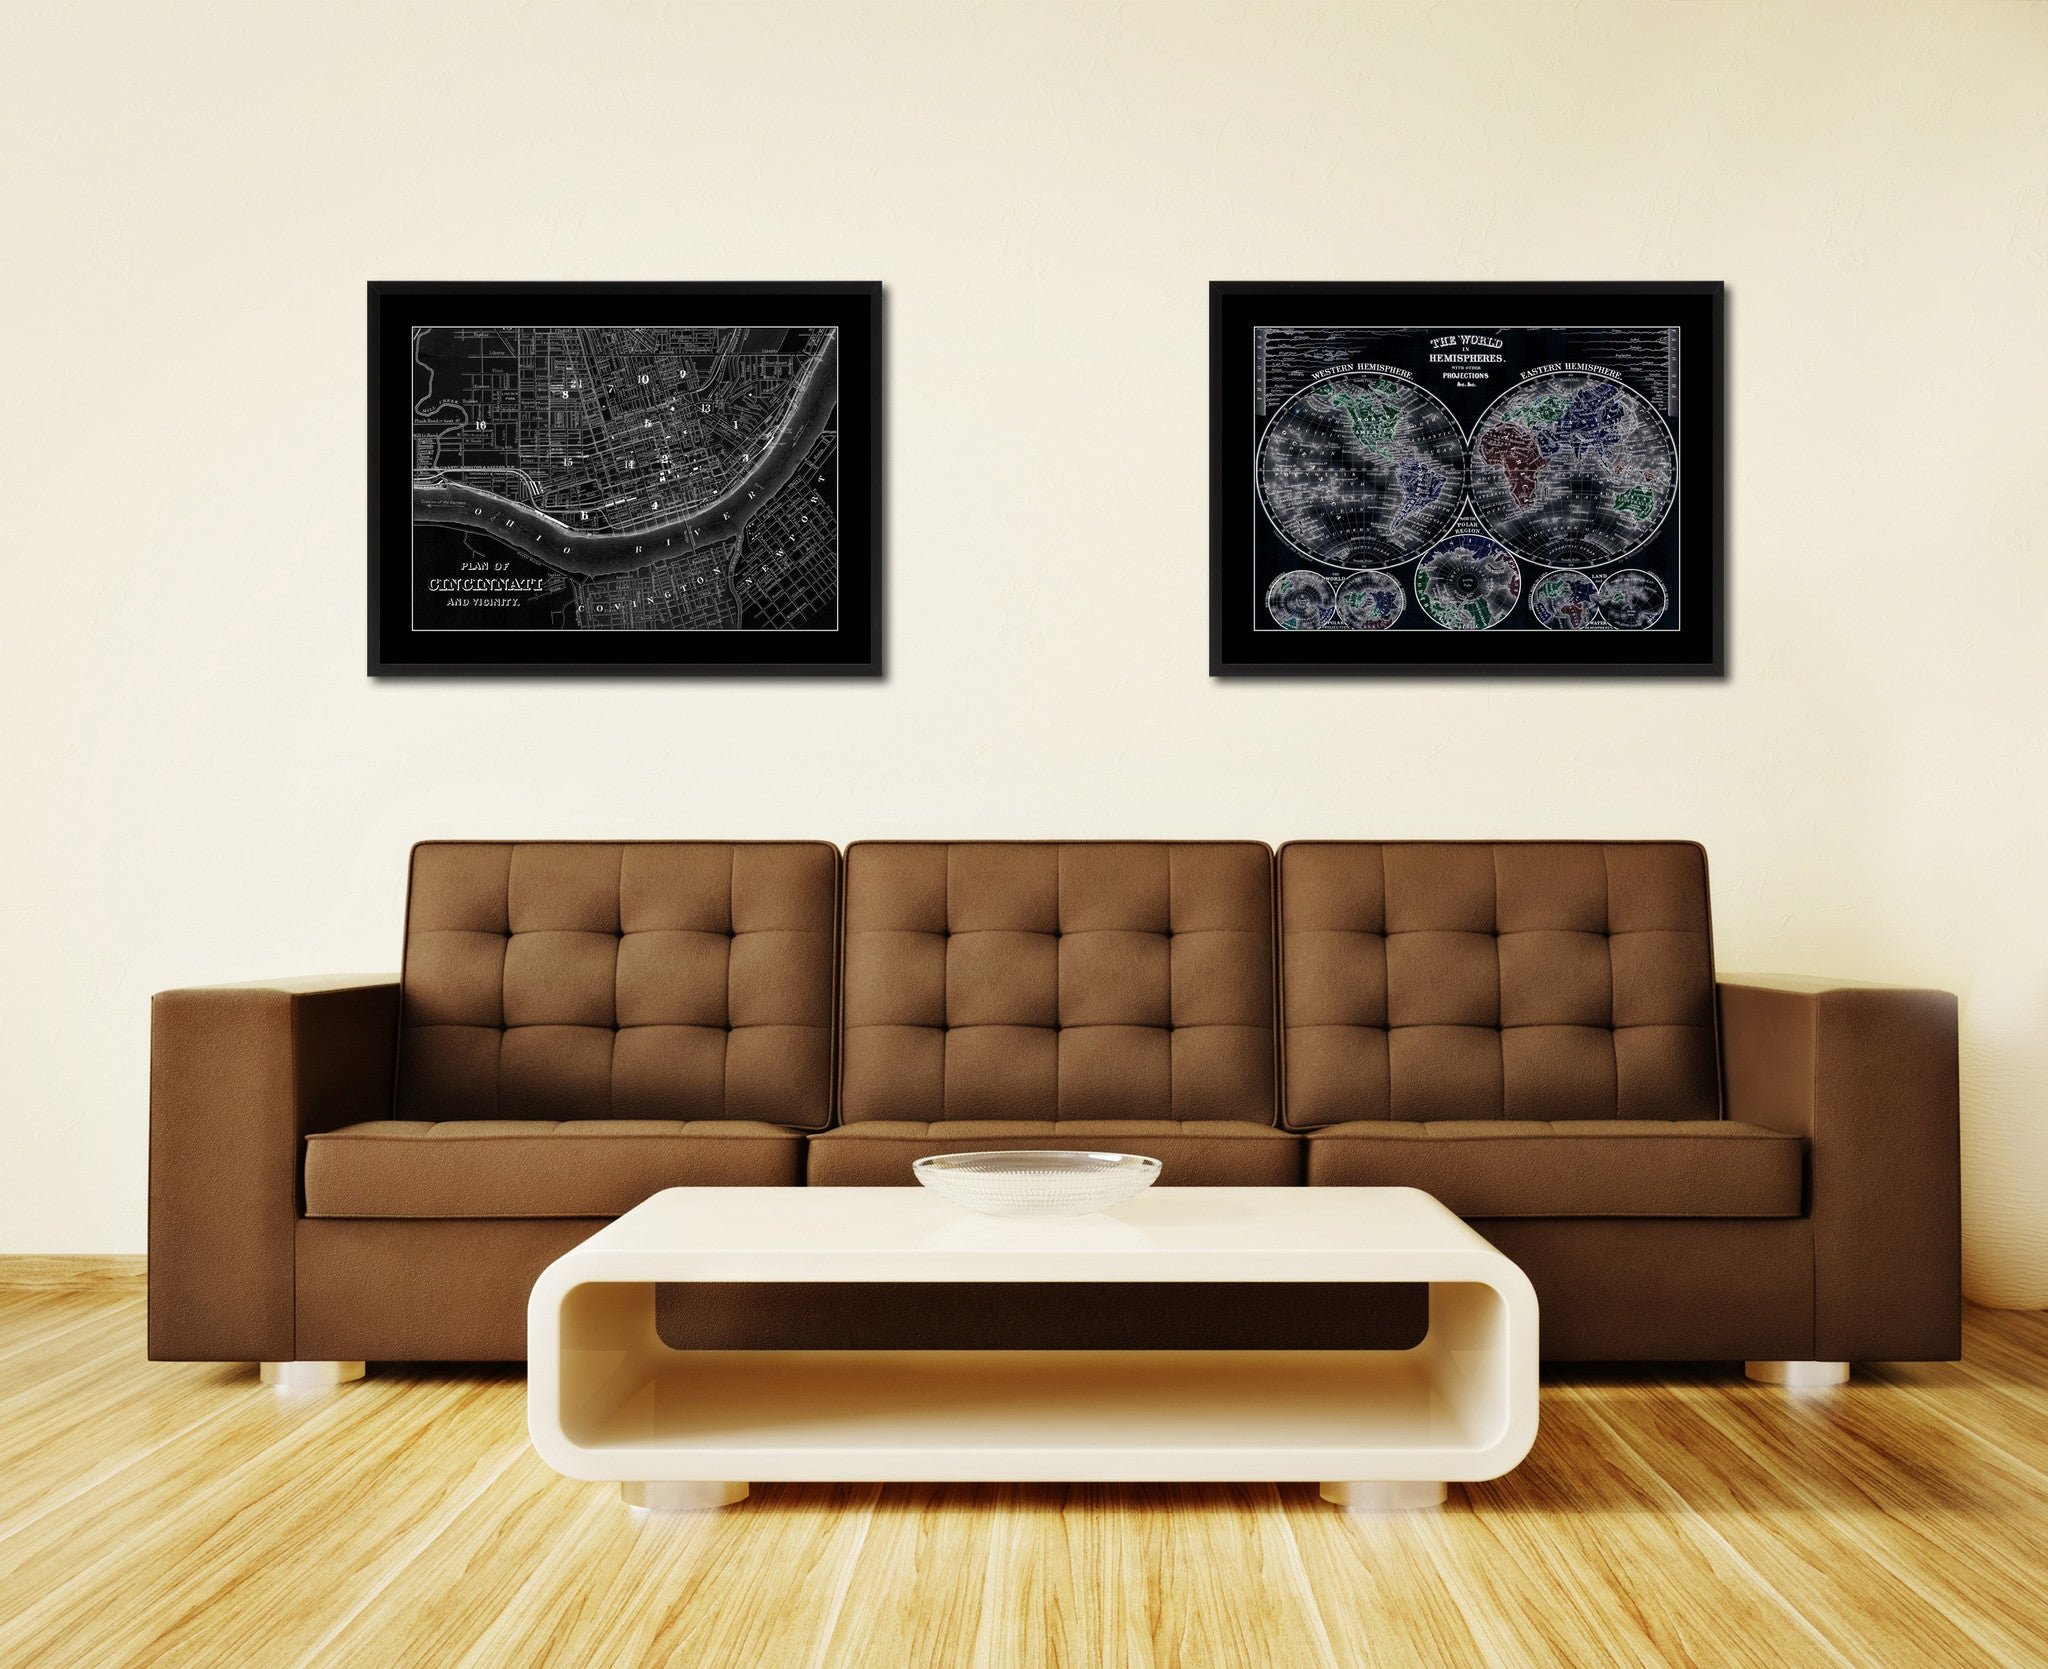 Cincinnati Vintage Monochrome Map Canvas Print, Gifts Picture Frames Home Decor Wall Art